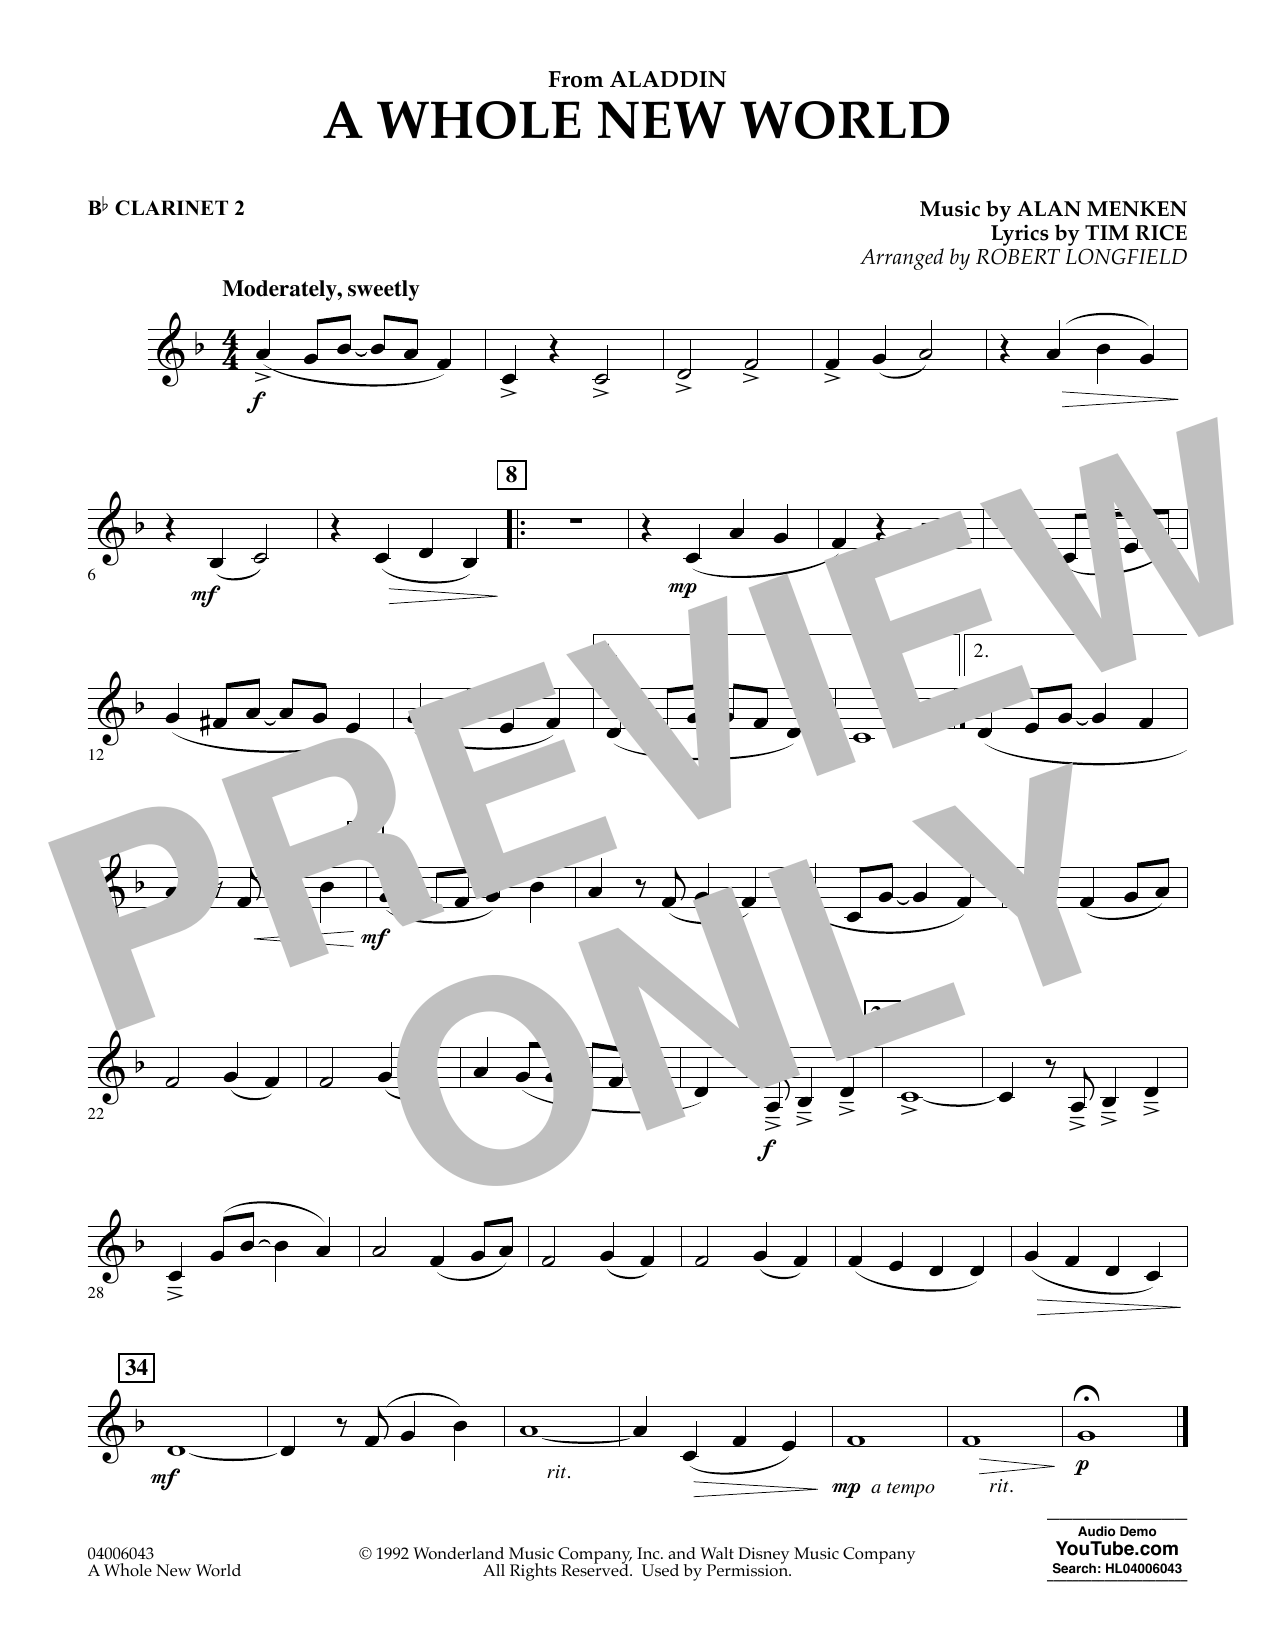 Download Alan Menken 'A Whole New World (from Aladdin) (arr. Robert Longfield) - Bb Clarinet 2' Digital Sheet Music Notes & Chords and start playing in minutes